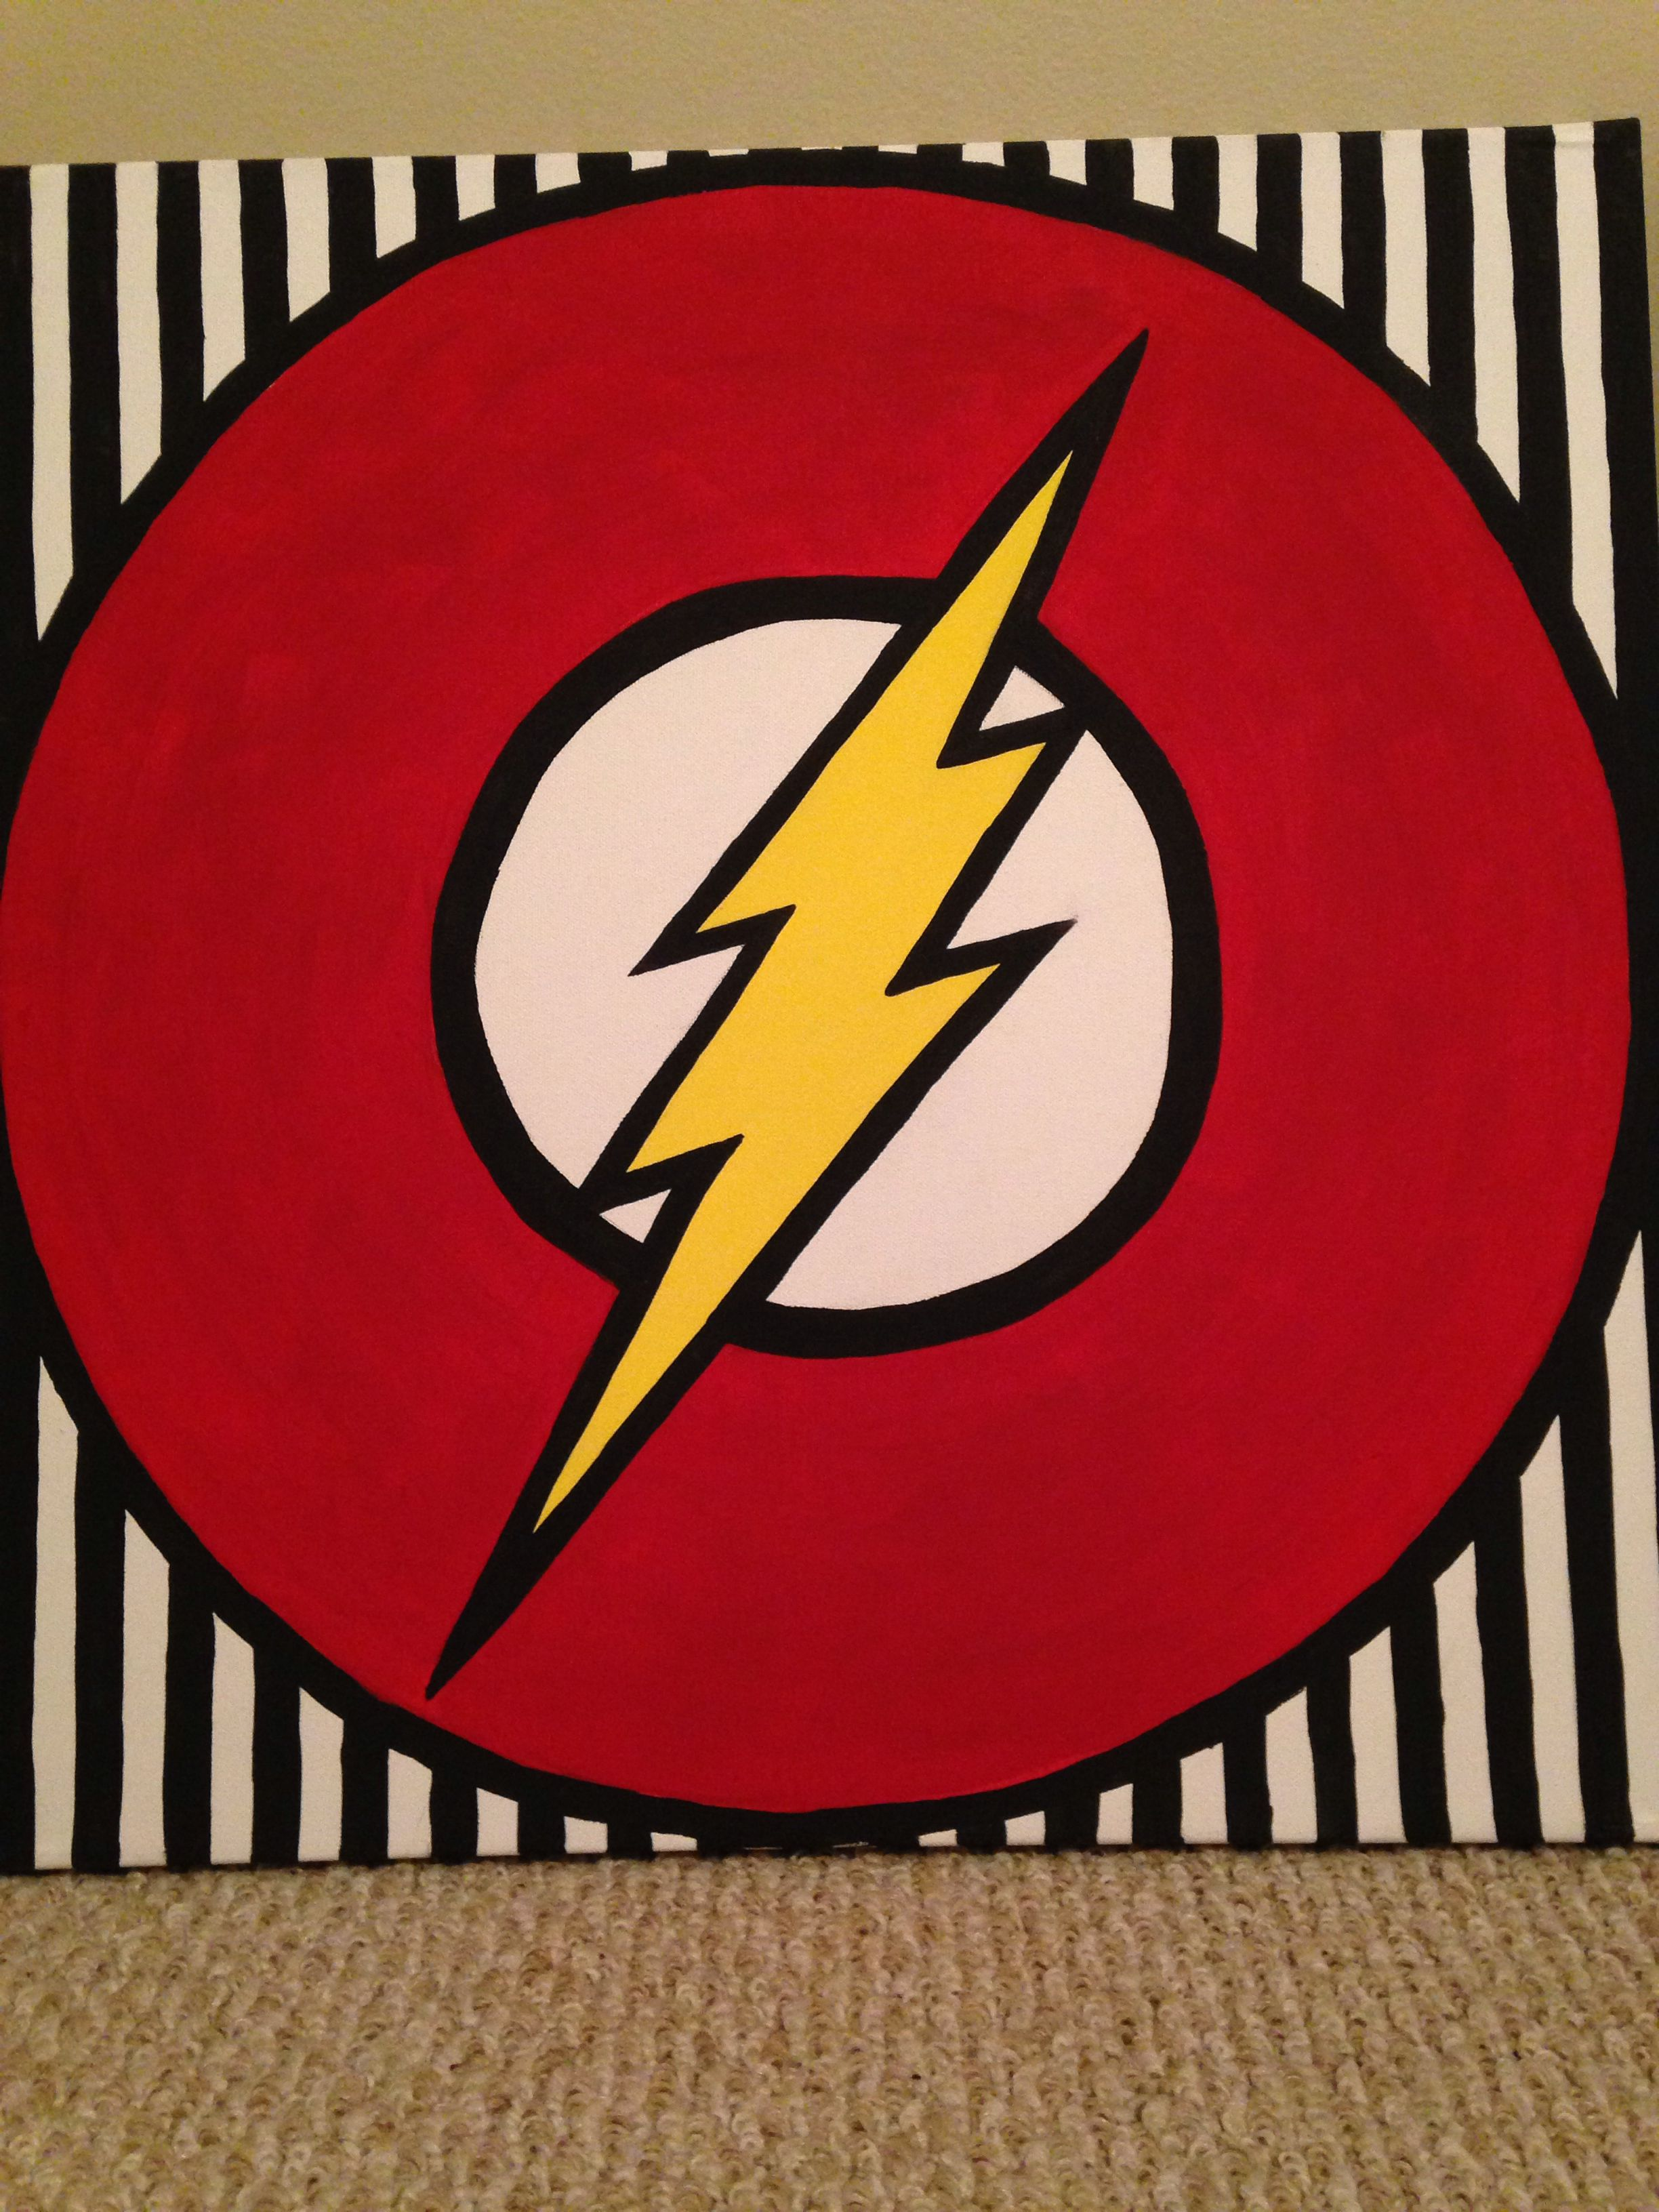 Superhero Wall Art The Flash Supplies 20x20 Canvas Acrylic Paint Charcoal And Some Paint Canvas Painting Diy Superhero Painting Simple Canvas Paintings